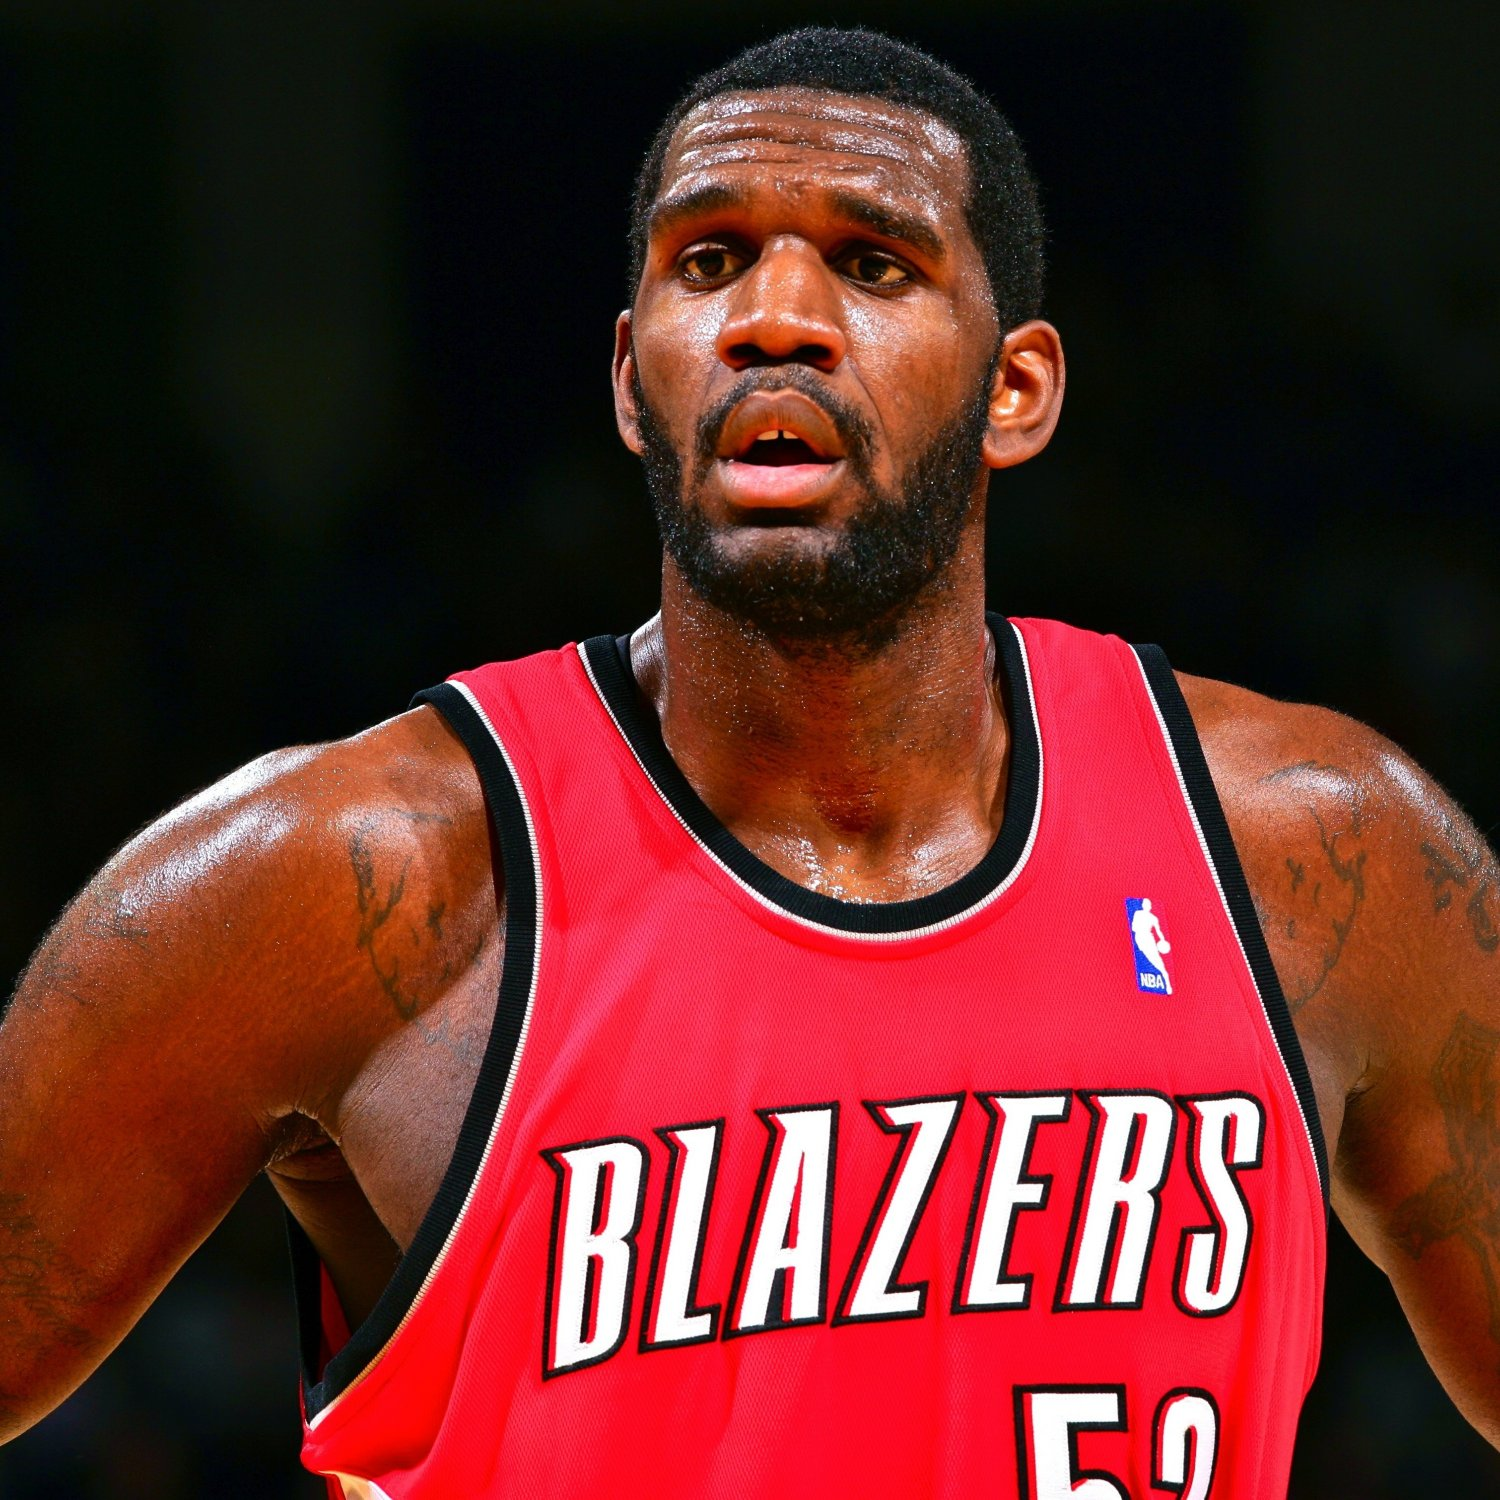 Blazers Draft Picks: Greg Oden To Heat: Miami Signs Former No. 1 Overall Draft